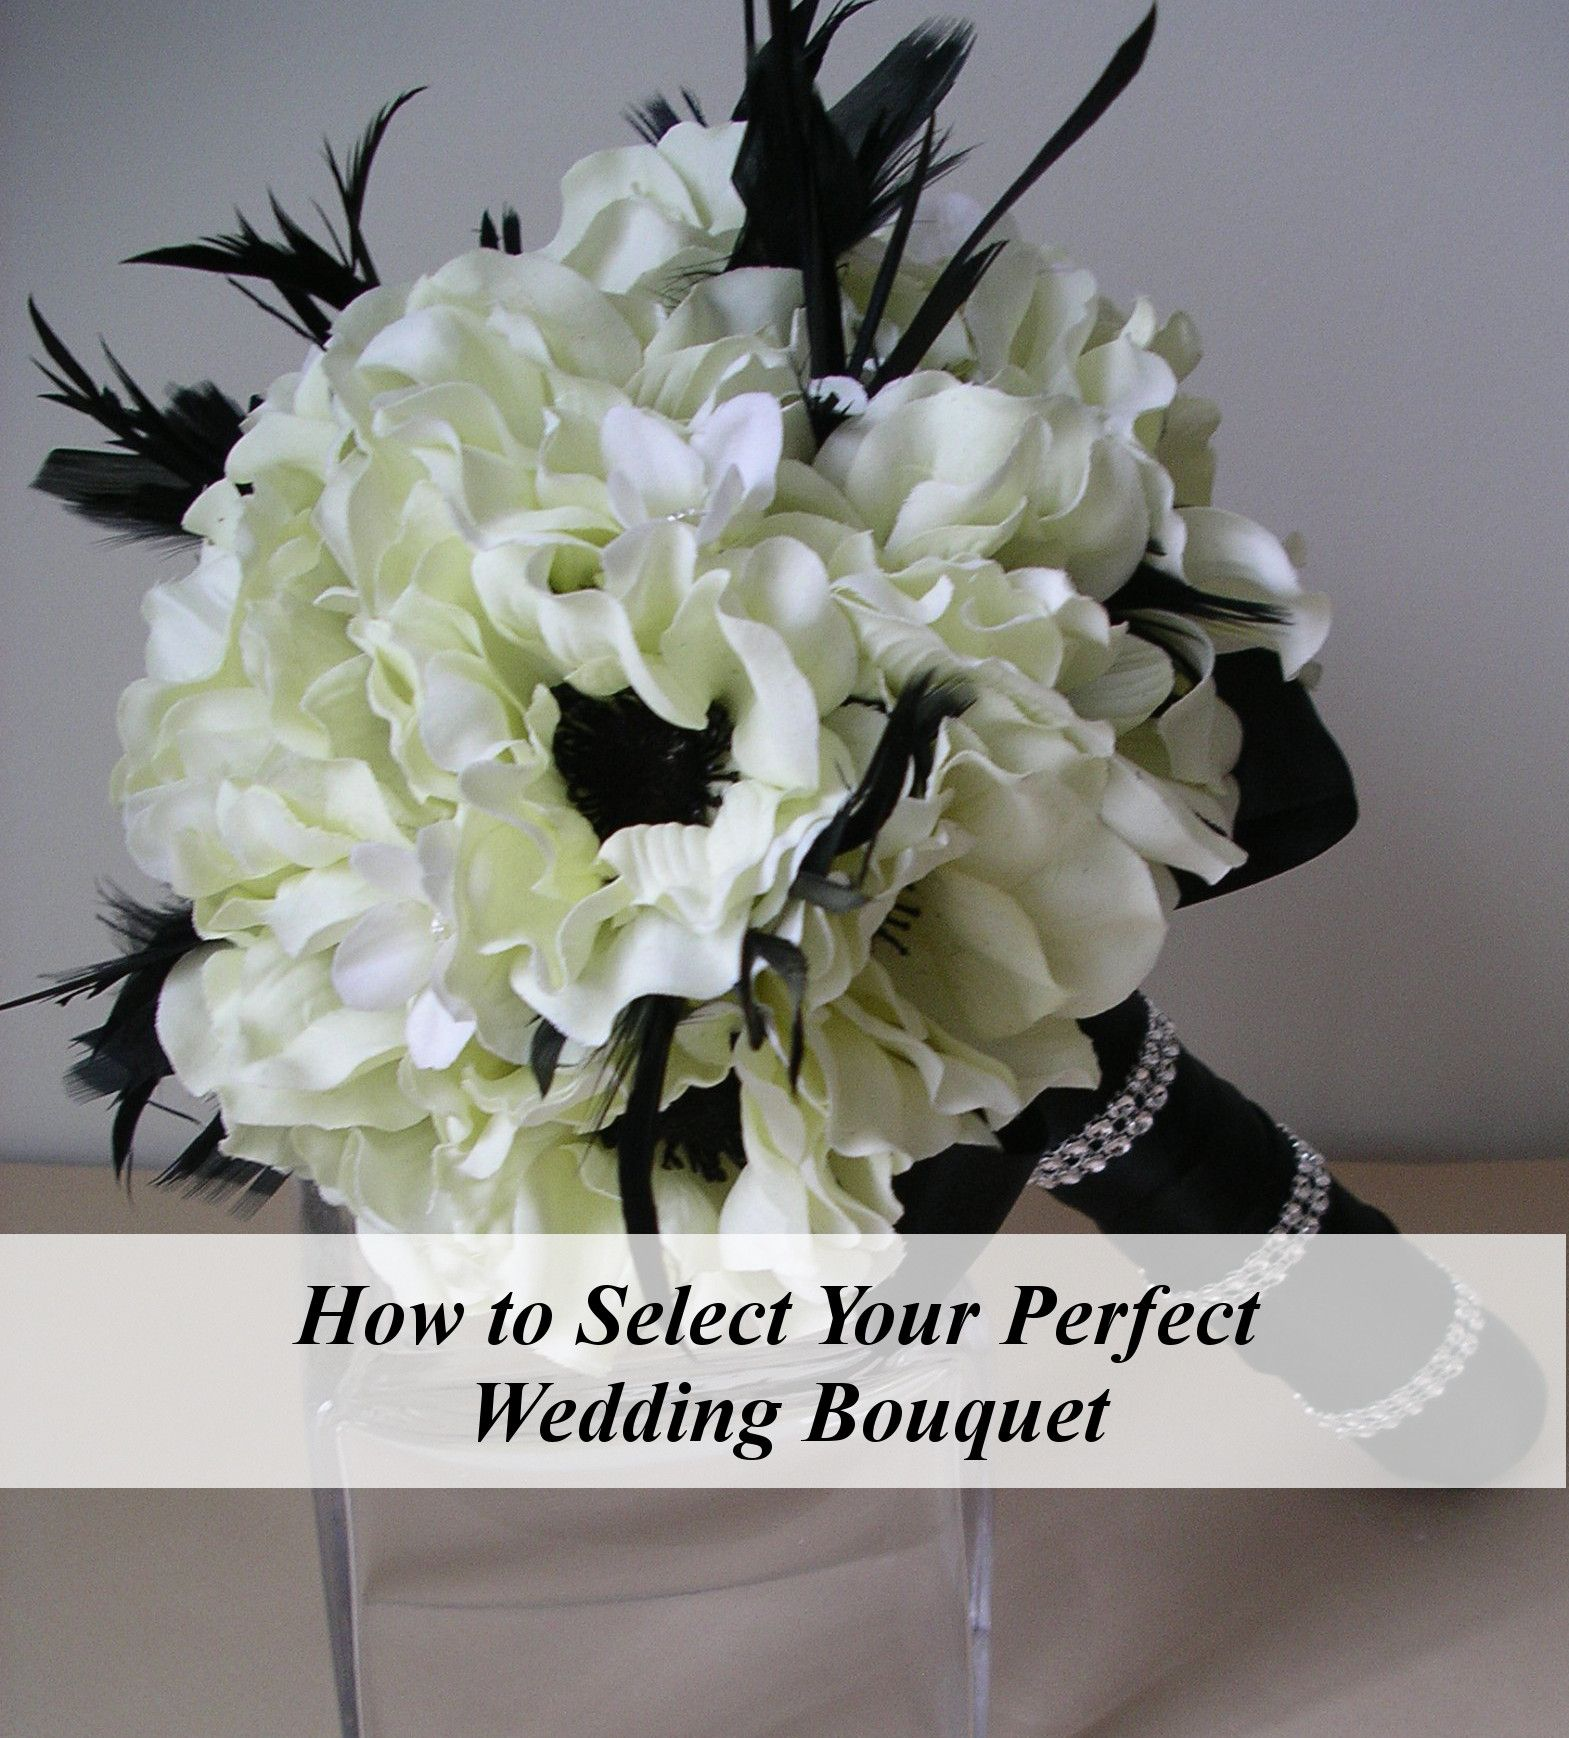 Blog post how to select your perfect wedding bouquet